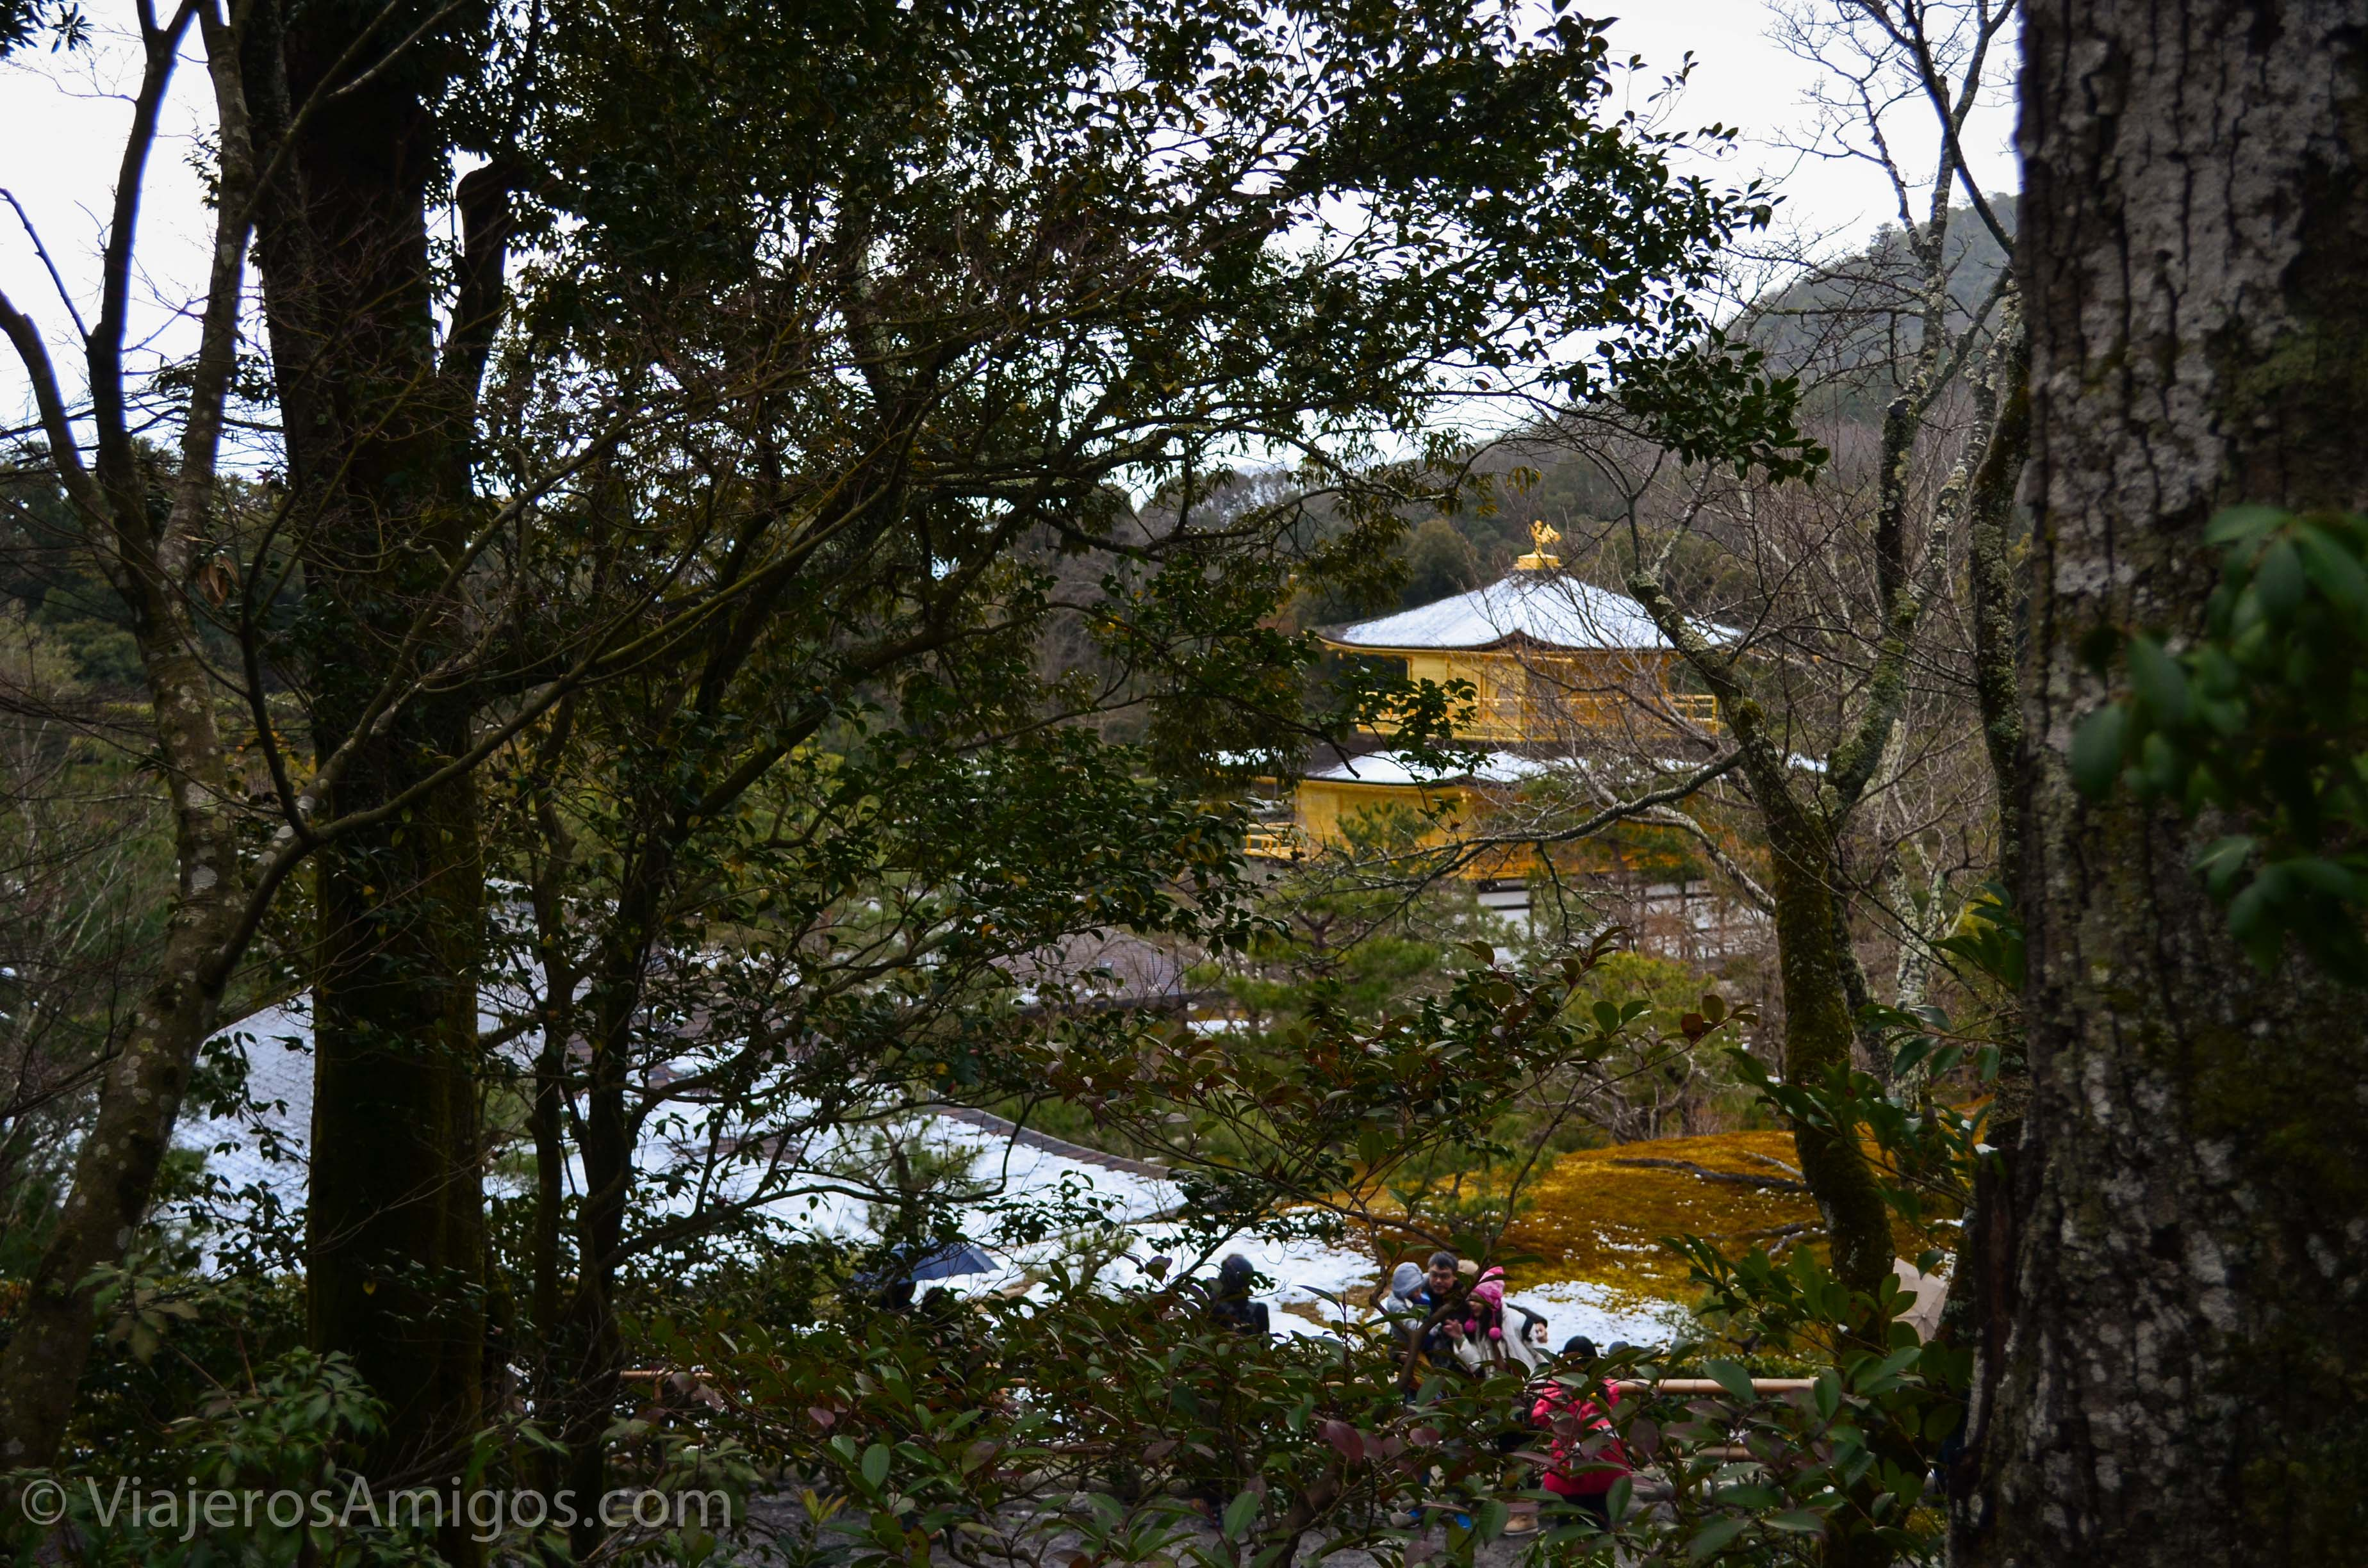 kinkakuji temple from the trees